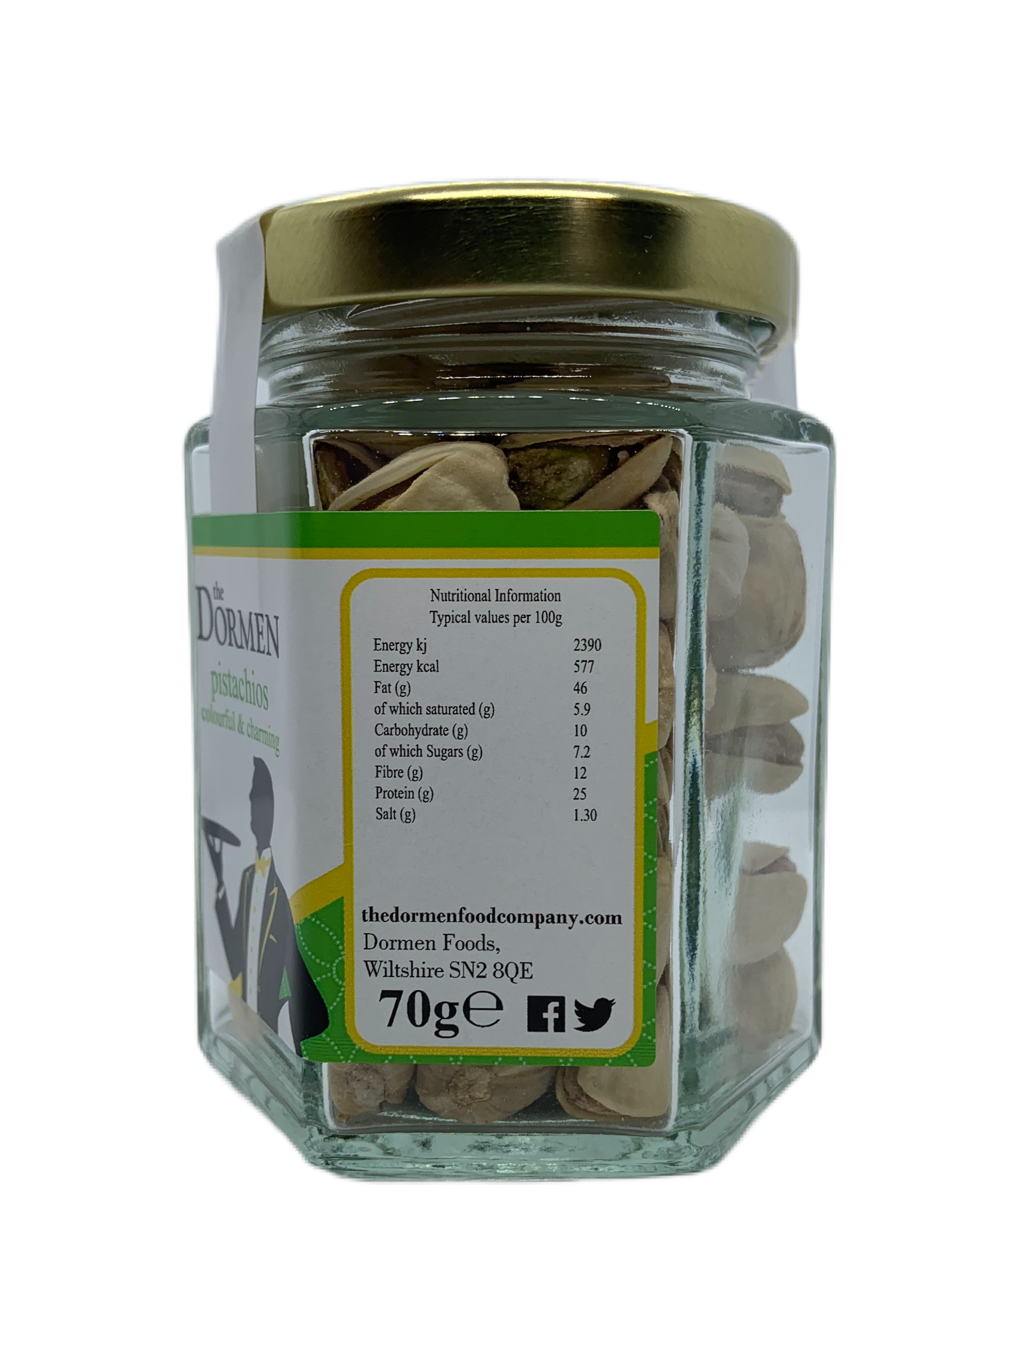 Salted Pistachios Hexagonal Jar (Trade) - The Dormen Food Company